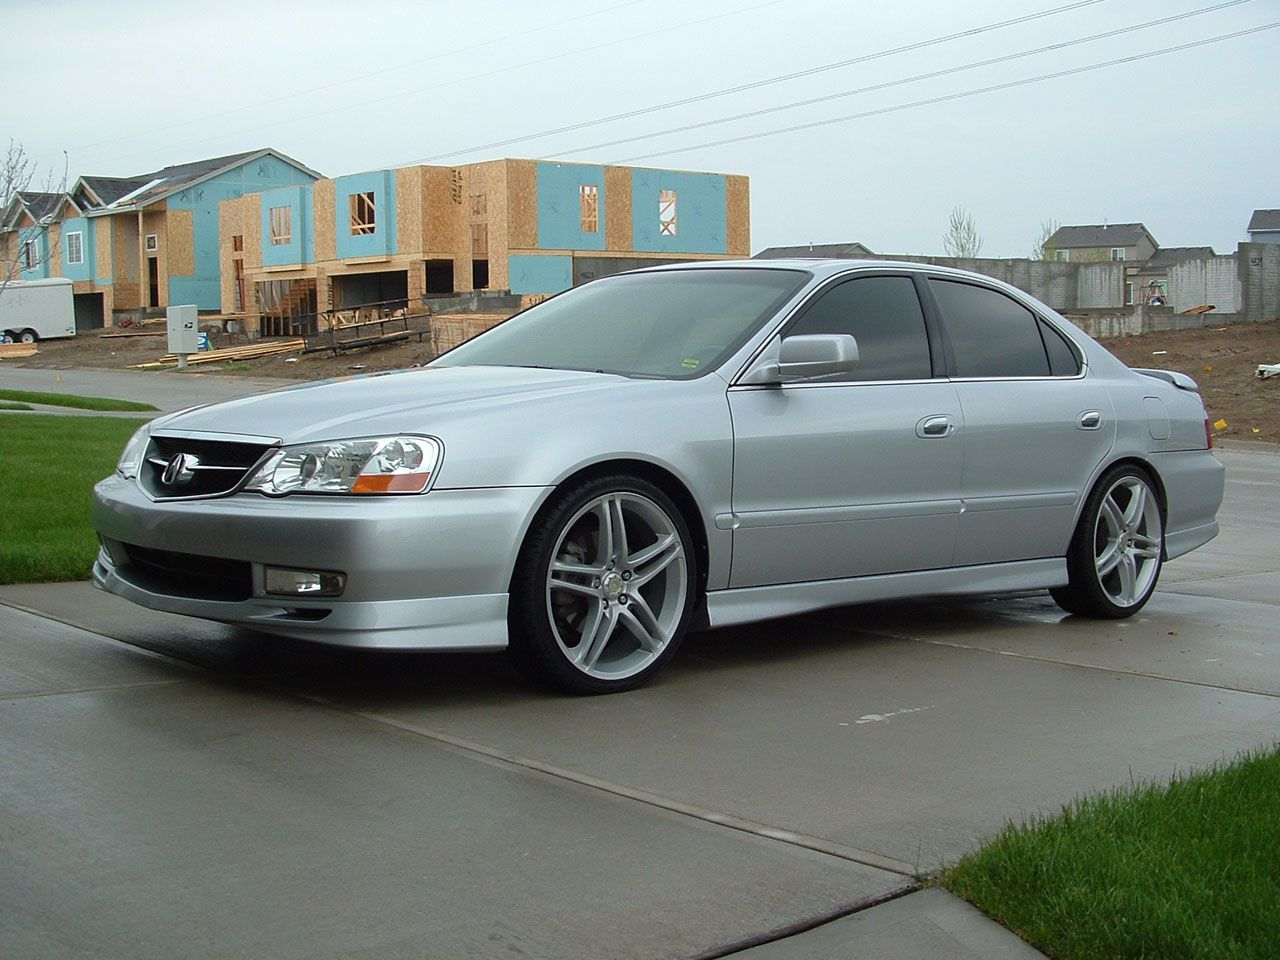 Custom Acura with Wheels tl-s 2002 | FS: 2003 SSM Acura TL ...